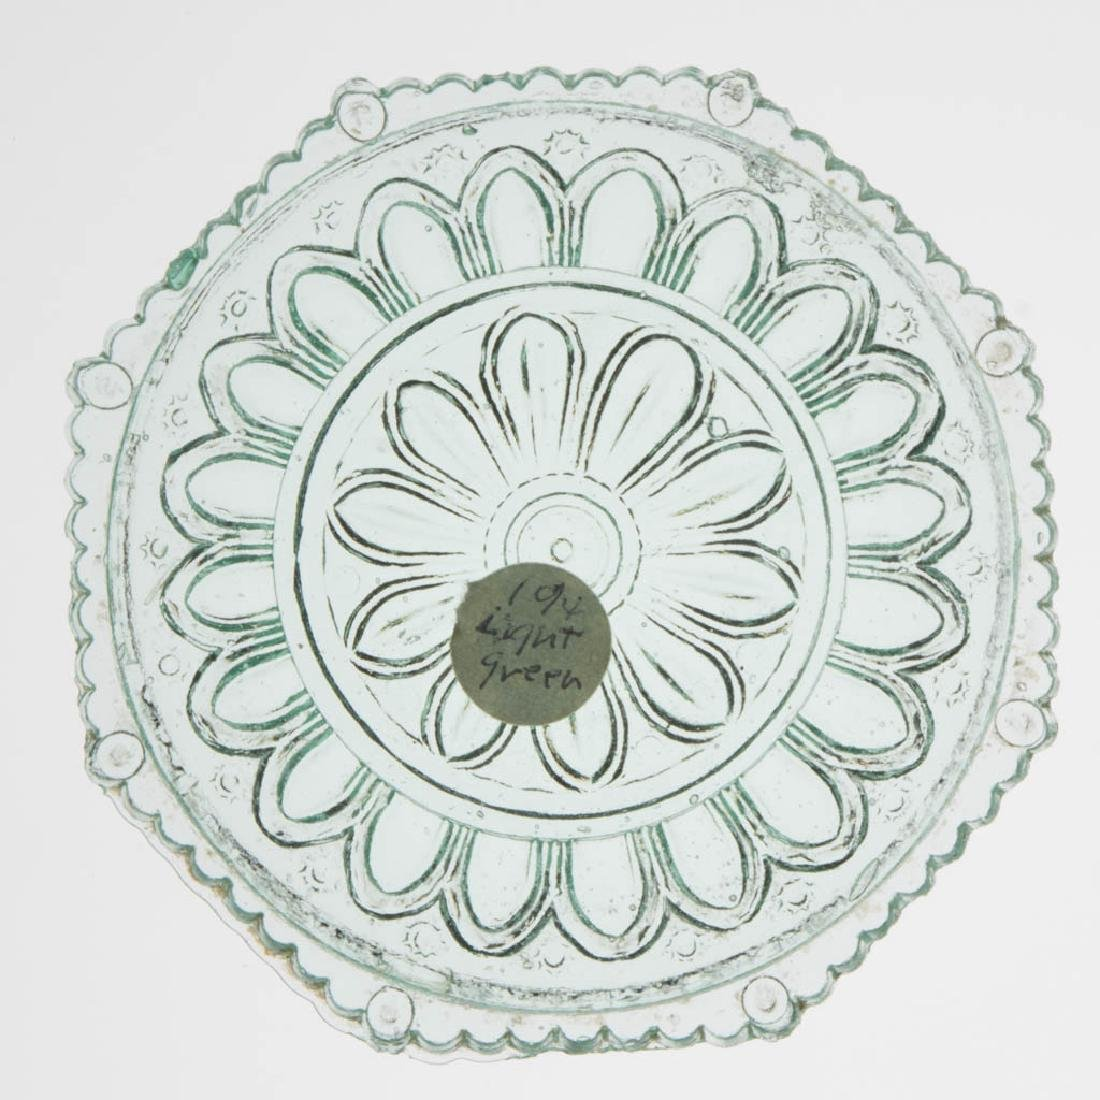 LEE/ROSE NO. 194 CUP PLATE